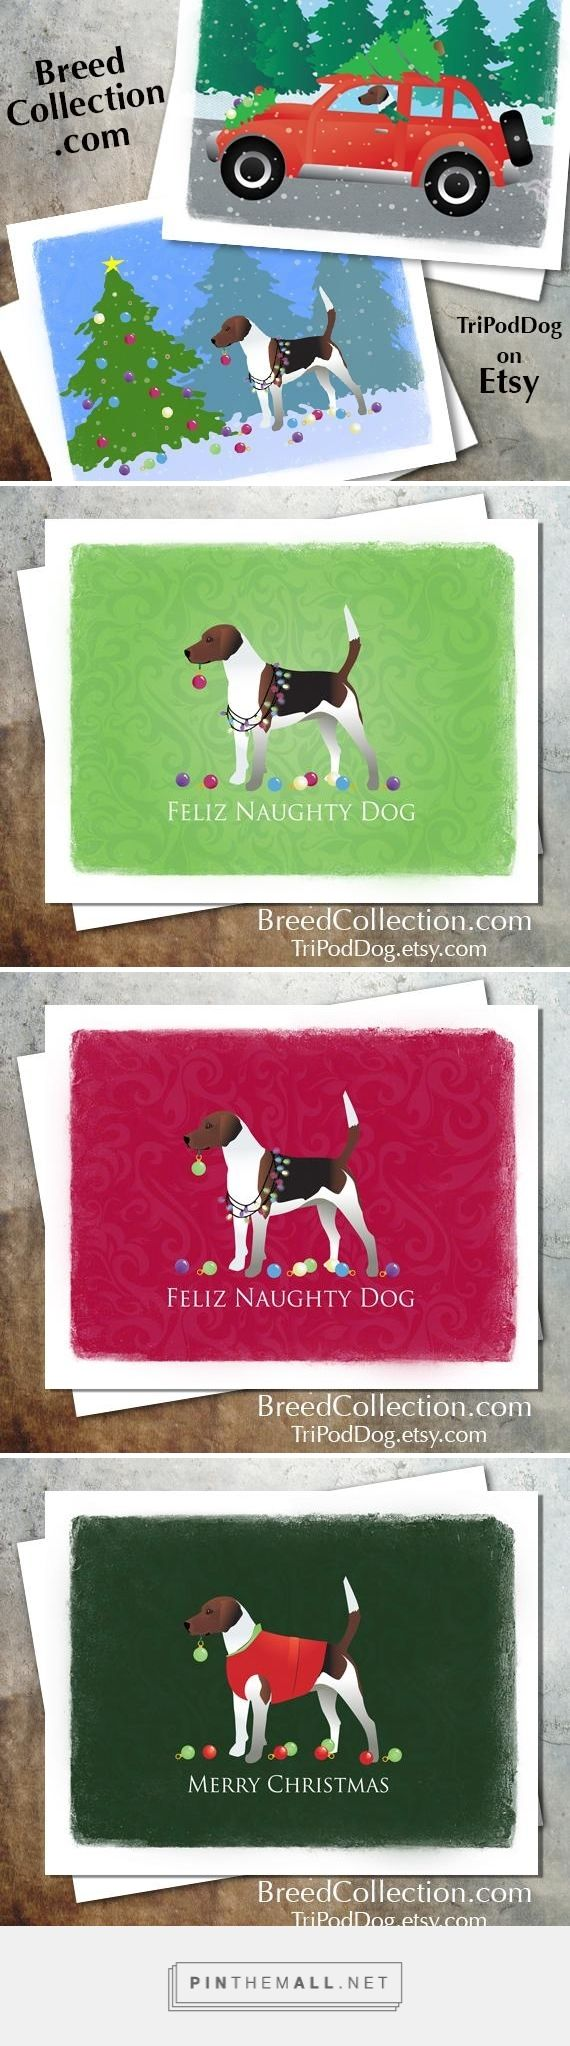 Harrier or Beagle hound Dog Christmas Cards from the Breed Collection - Digital Download Printable on Etsy